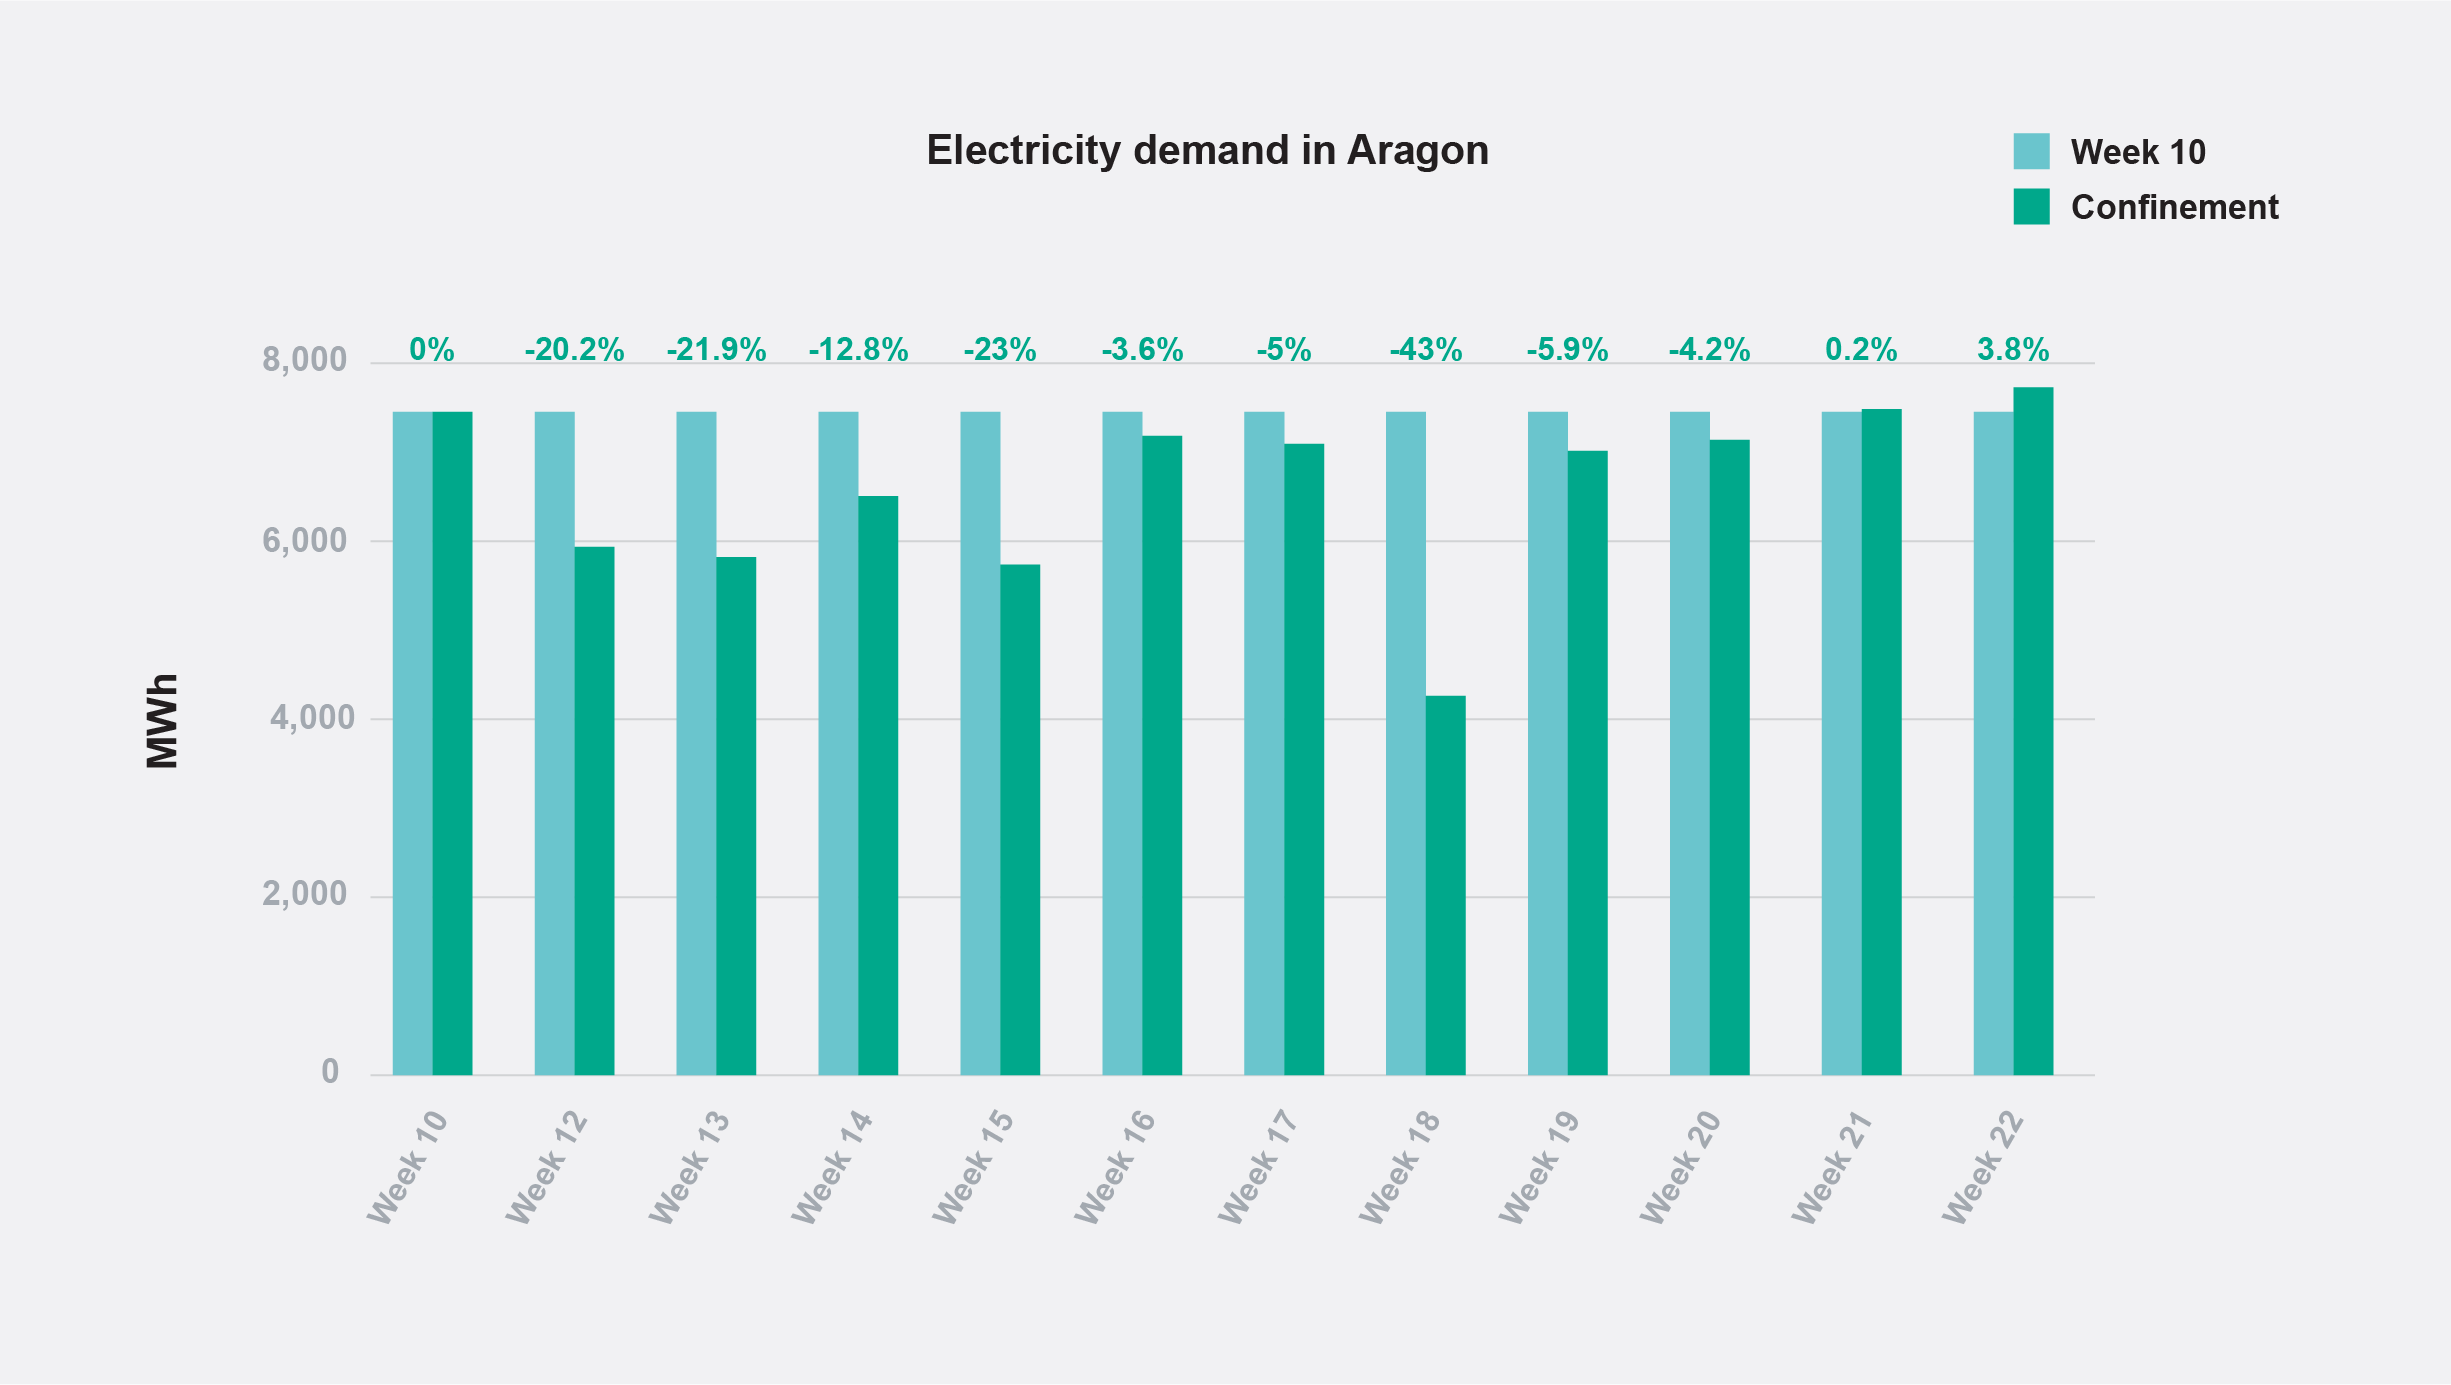 Energy demand in Aragon during home confinement.